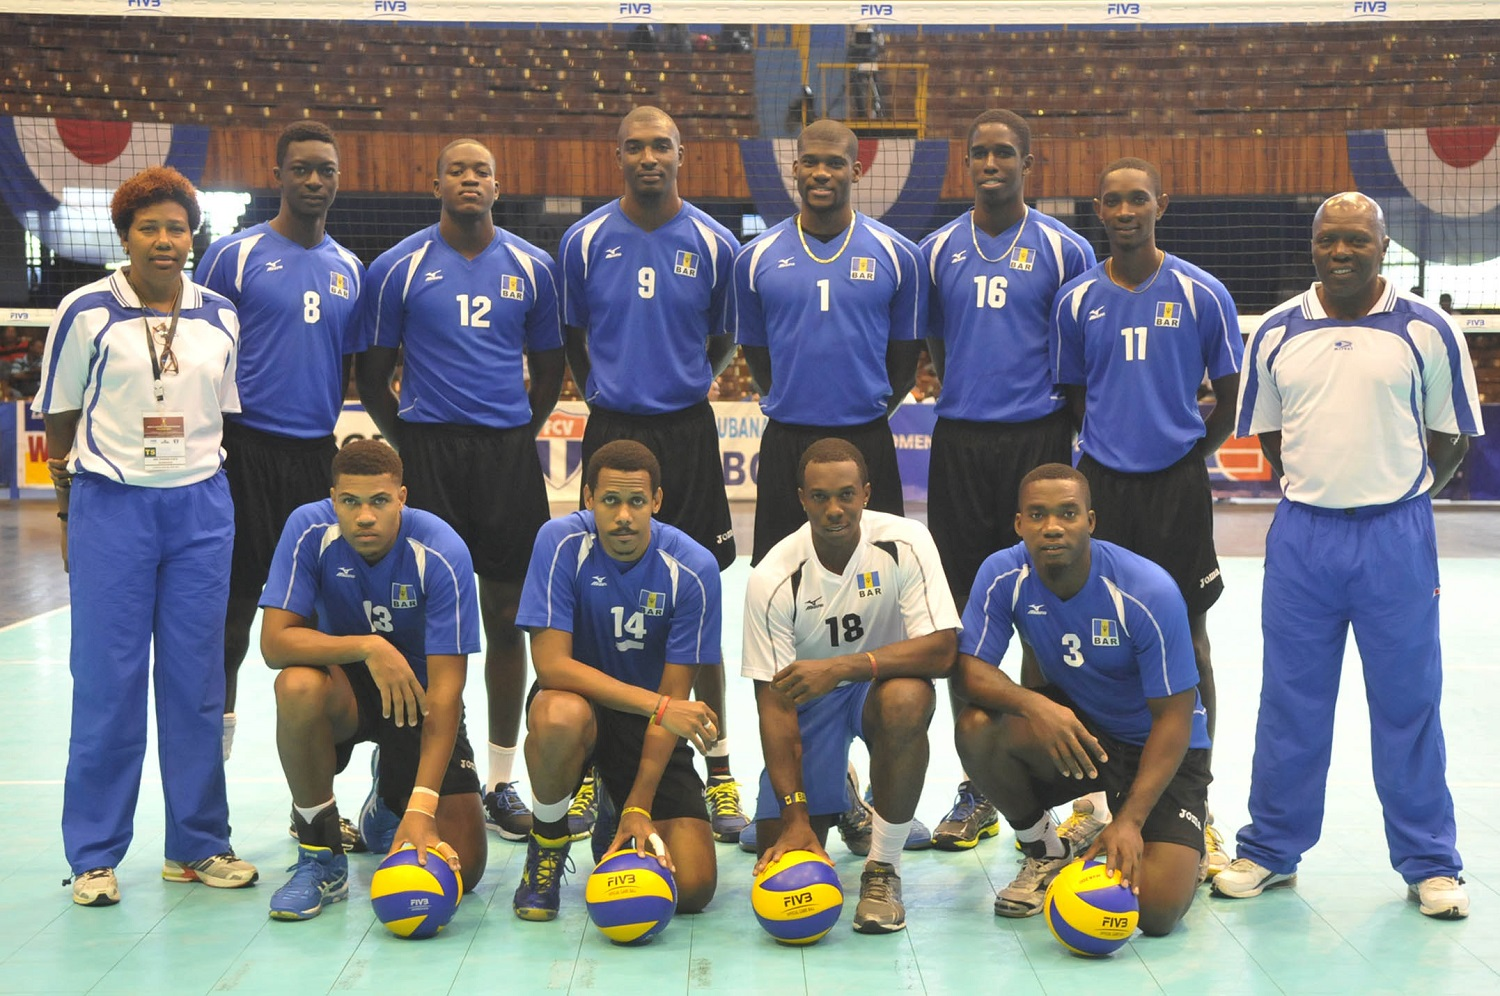 FIVB Men's World Championship NORCECA Qualifying Tournament Pool P